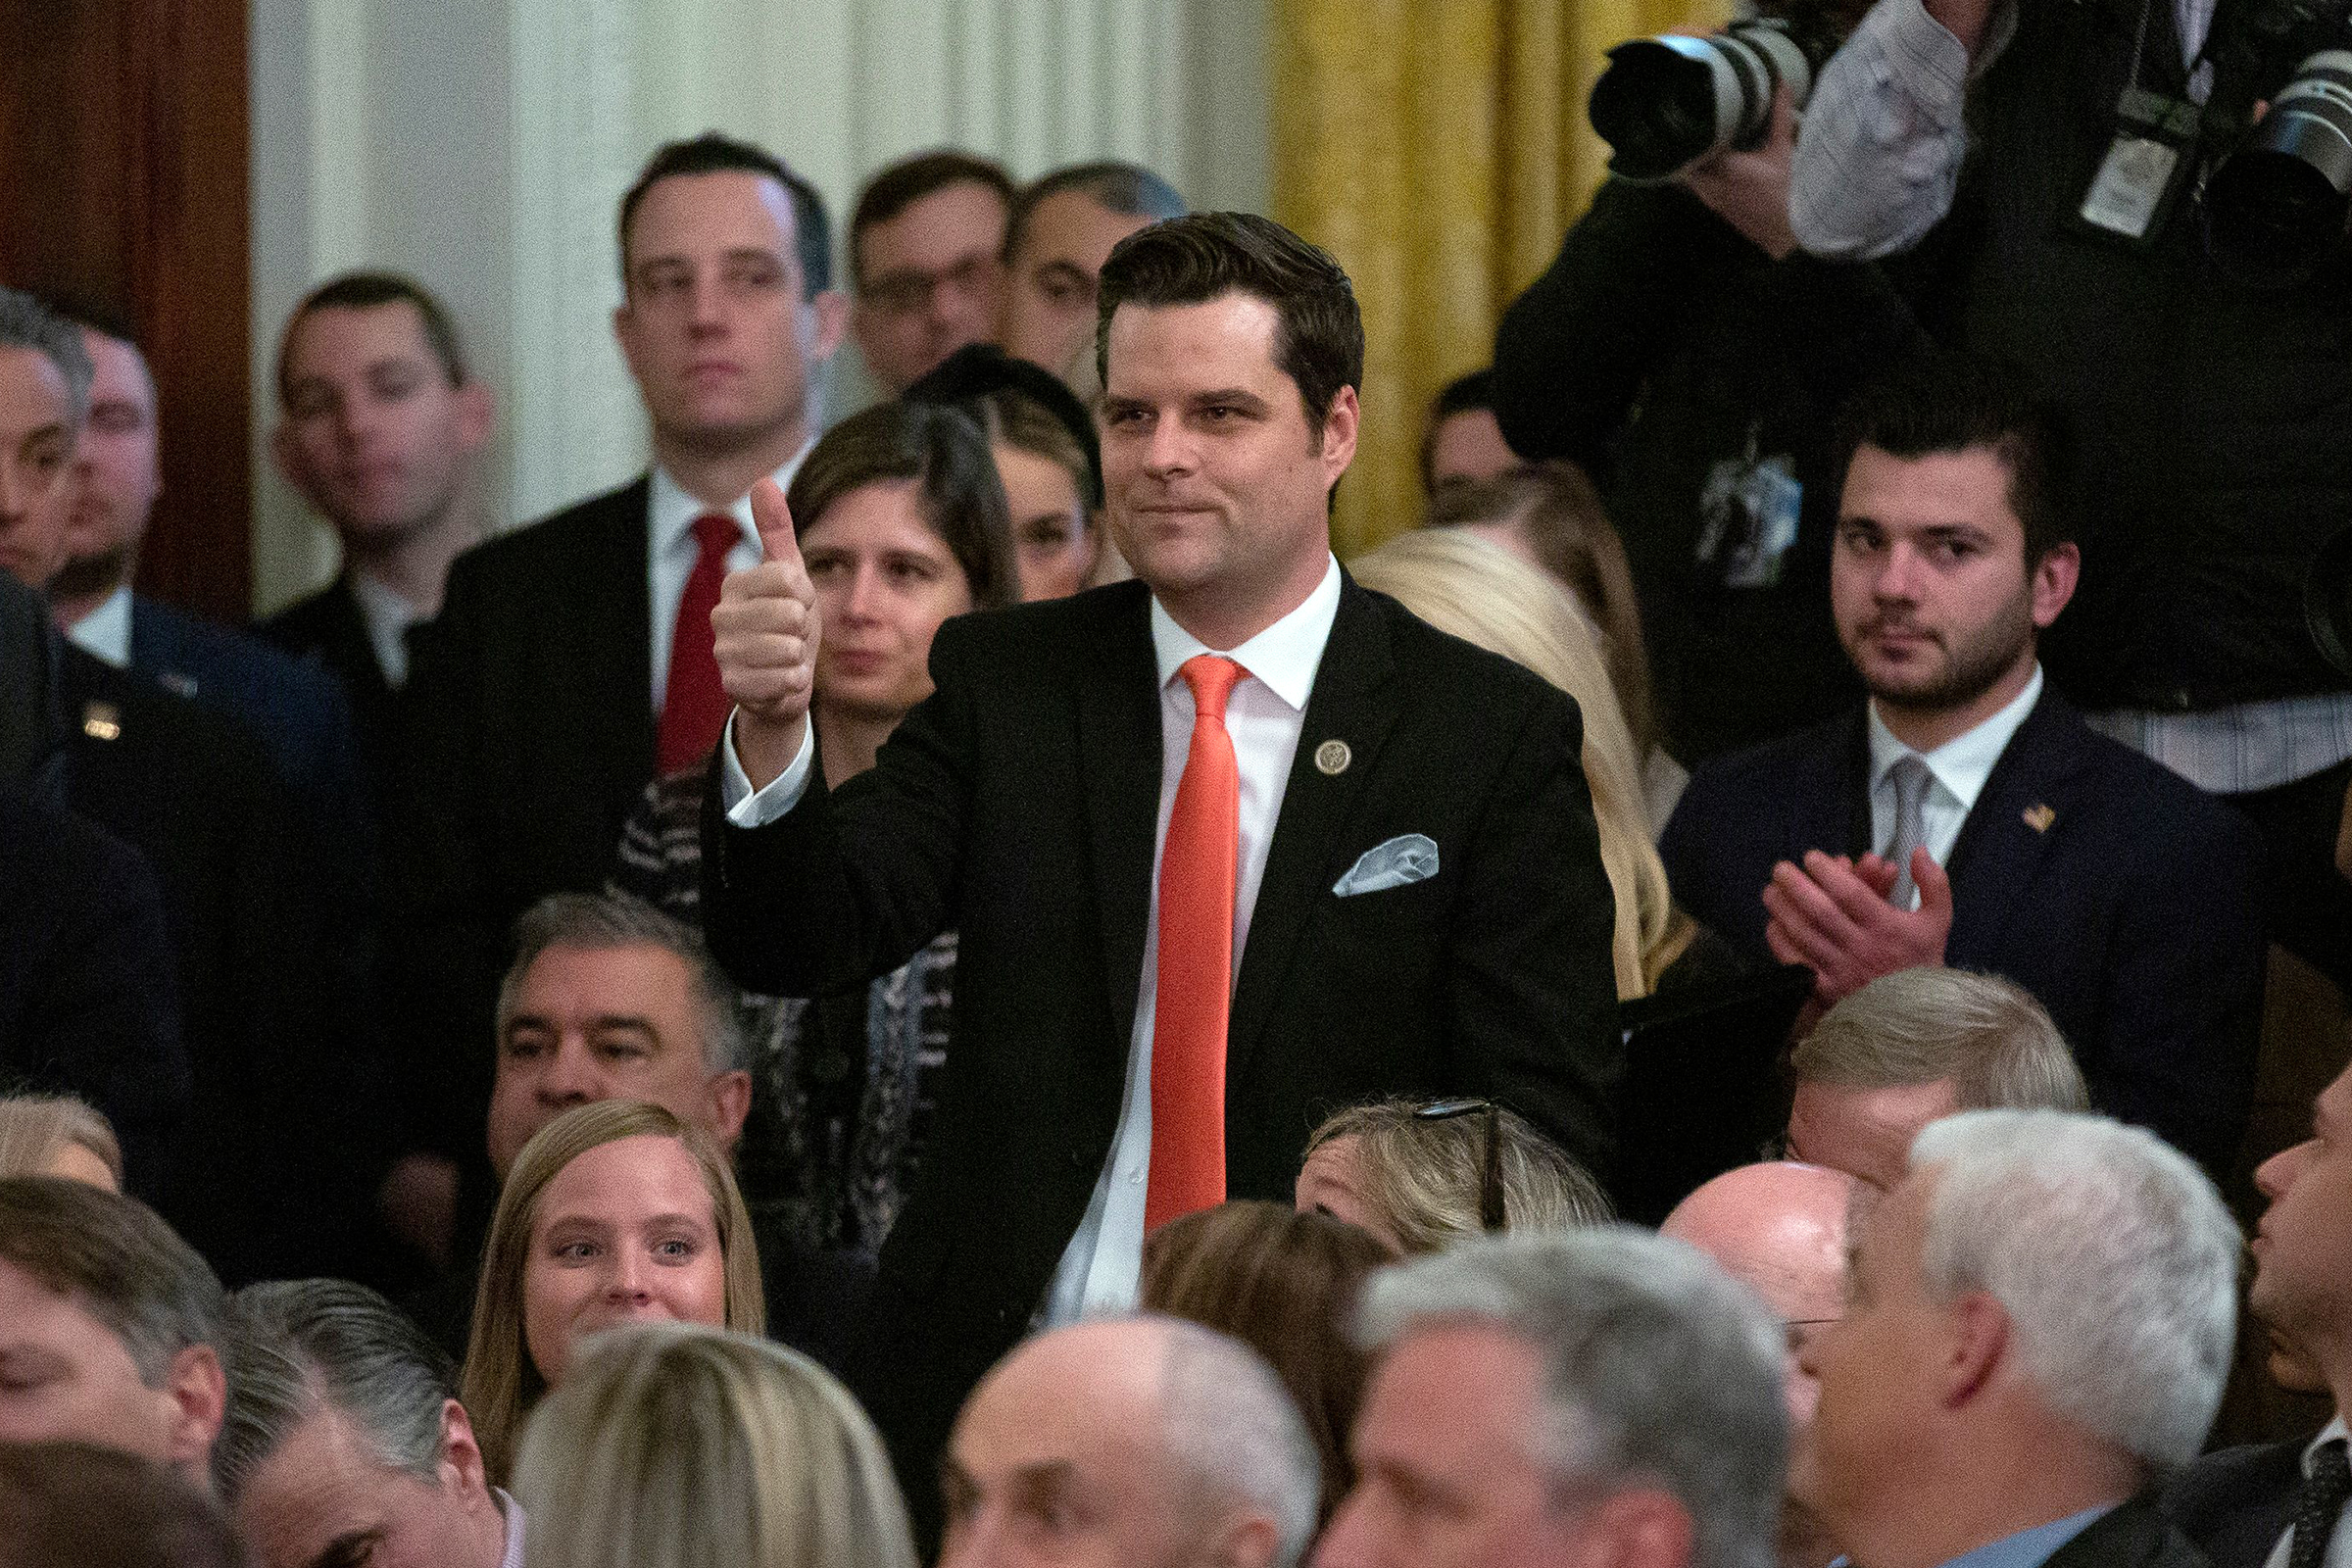 United States Representative Matt Gaetz (Republican of Florida) gives a thumbs up to United States President Donald Trump after being introduced during Trump's remarks regarding the Senate vote to acquit him of both articles of impeachment in the East Room of the White House in Washington DCUS President Donald Trump Acquittal Speech, Washington DC, USA - 06 Feb 2020